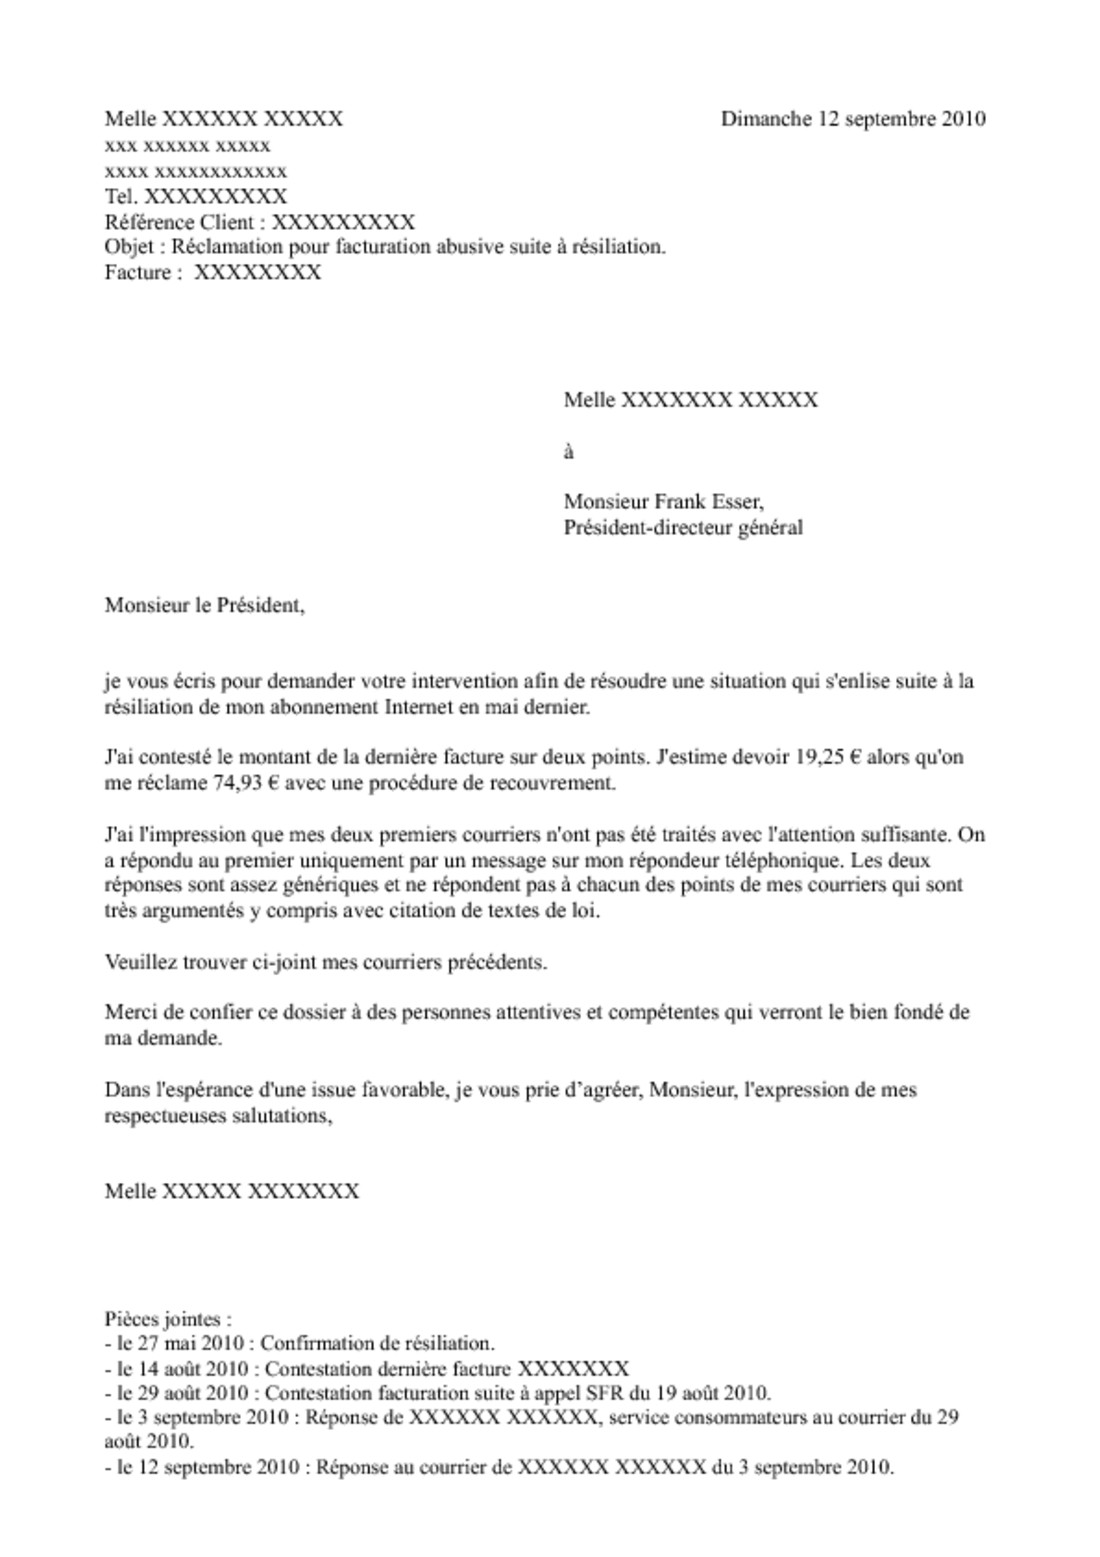 exemple de courrier avec copie a